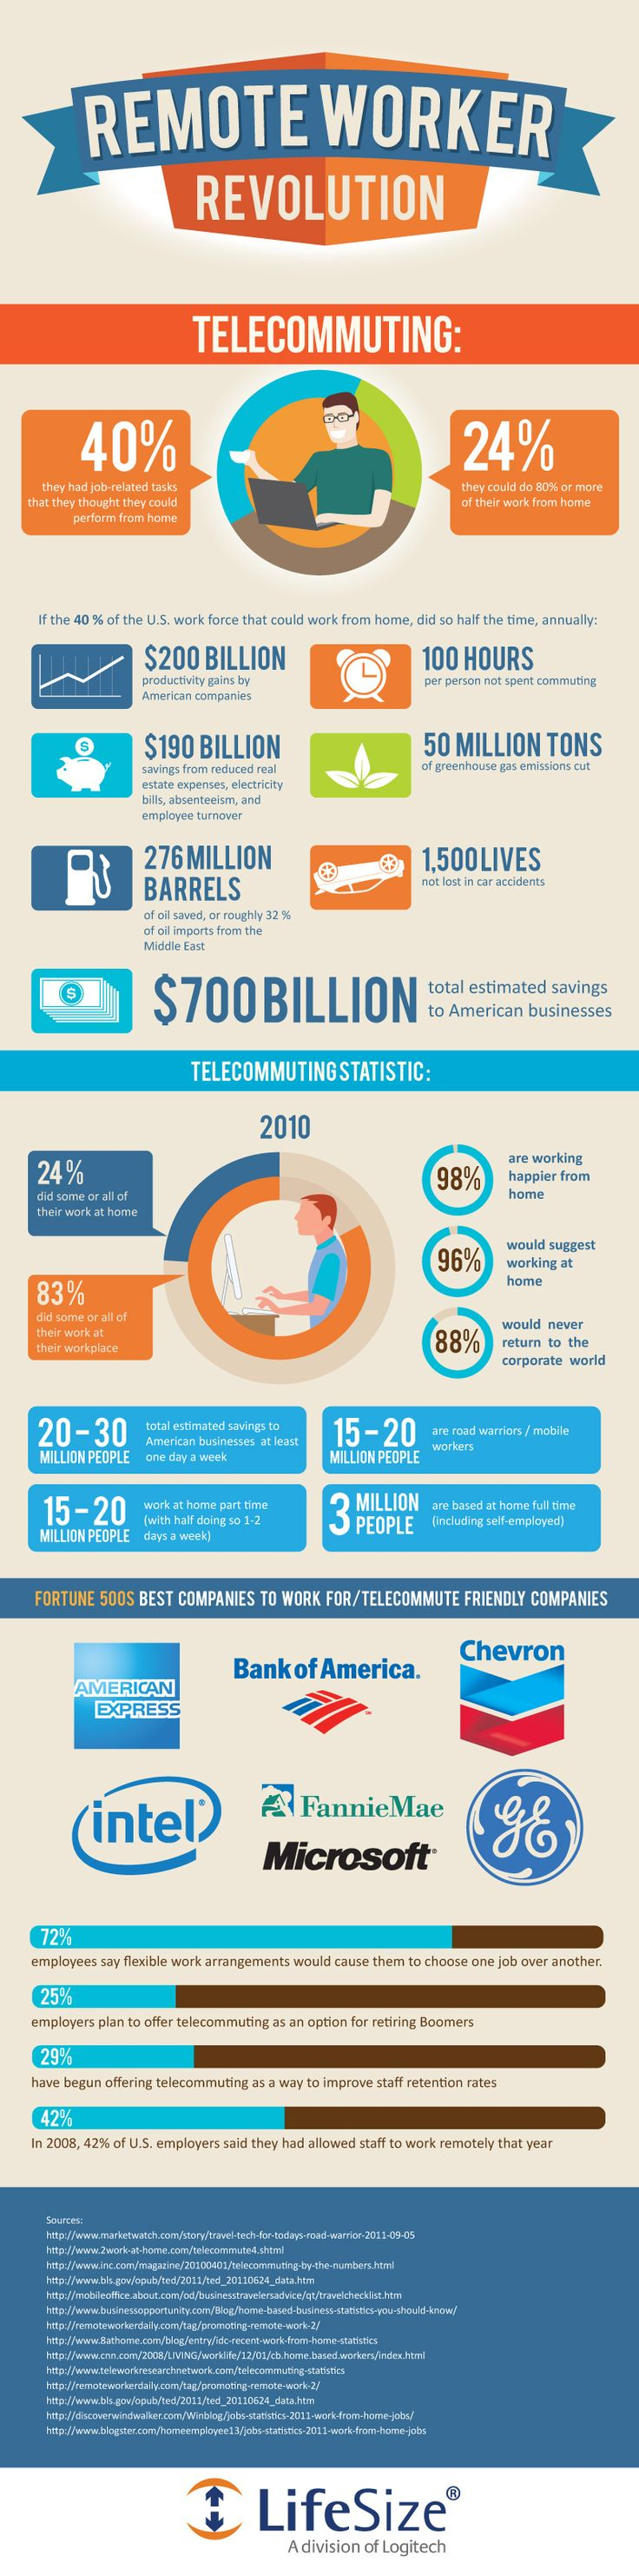 When recruiting do you think about offering work at home opportunities. #Infographic #HR  #Telecommuting